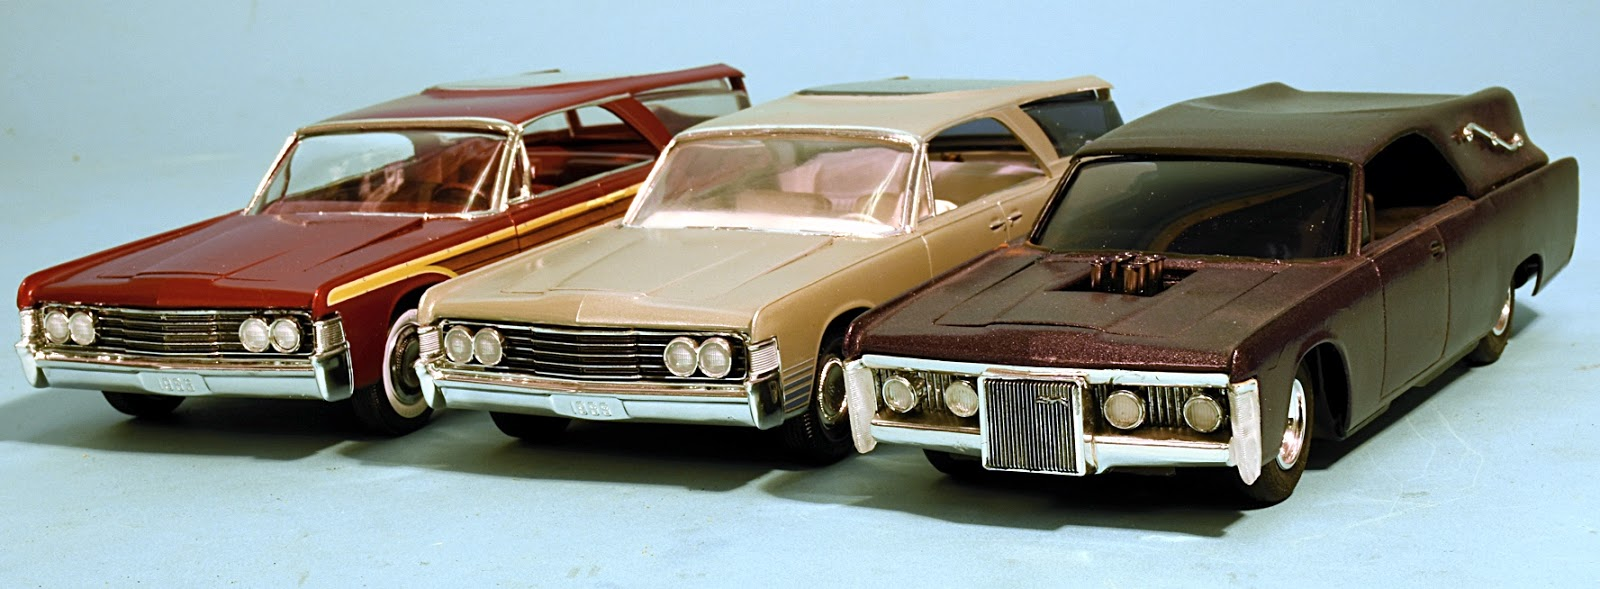 WAGON INTERIOR AND RELATED PARTS AMT 1//25 1965 LINCOLN CONTINENTAL CONVERTIBLE